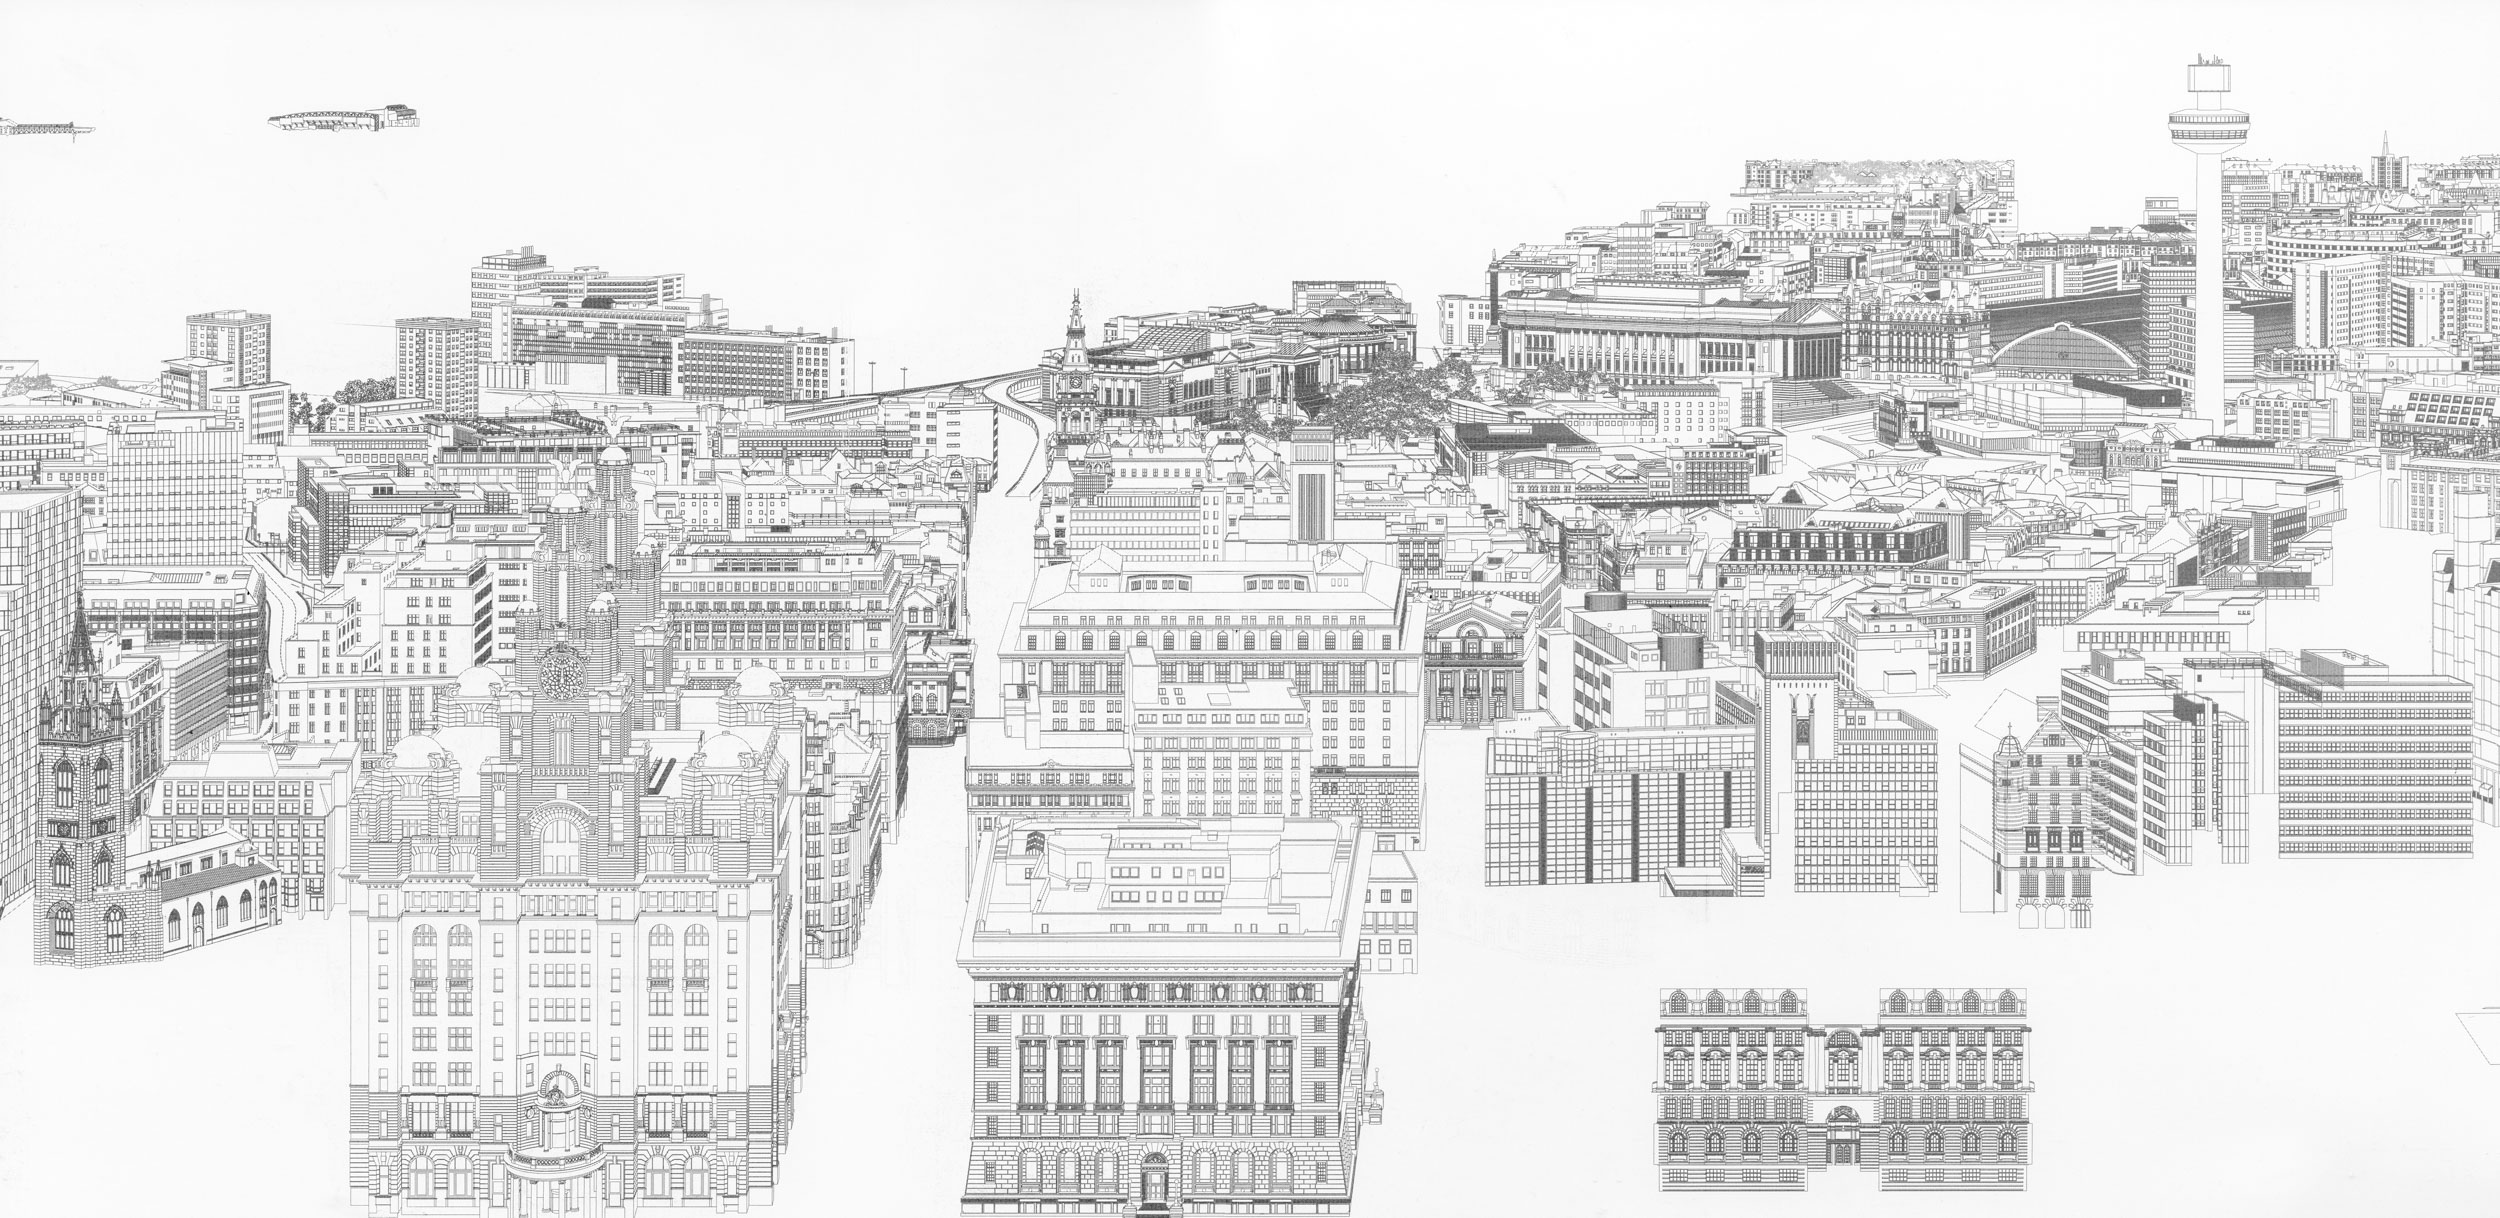 Liverpool (detail - in progress)